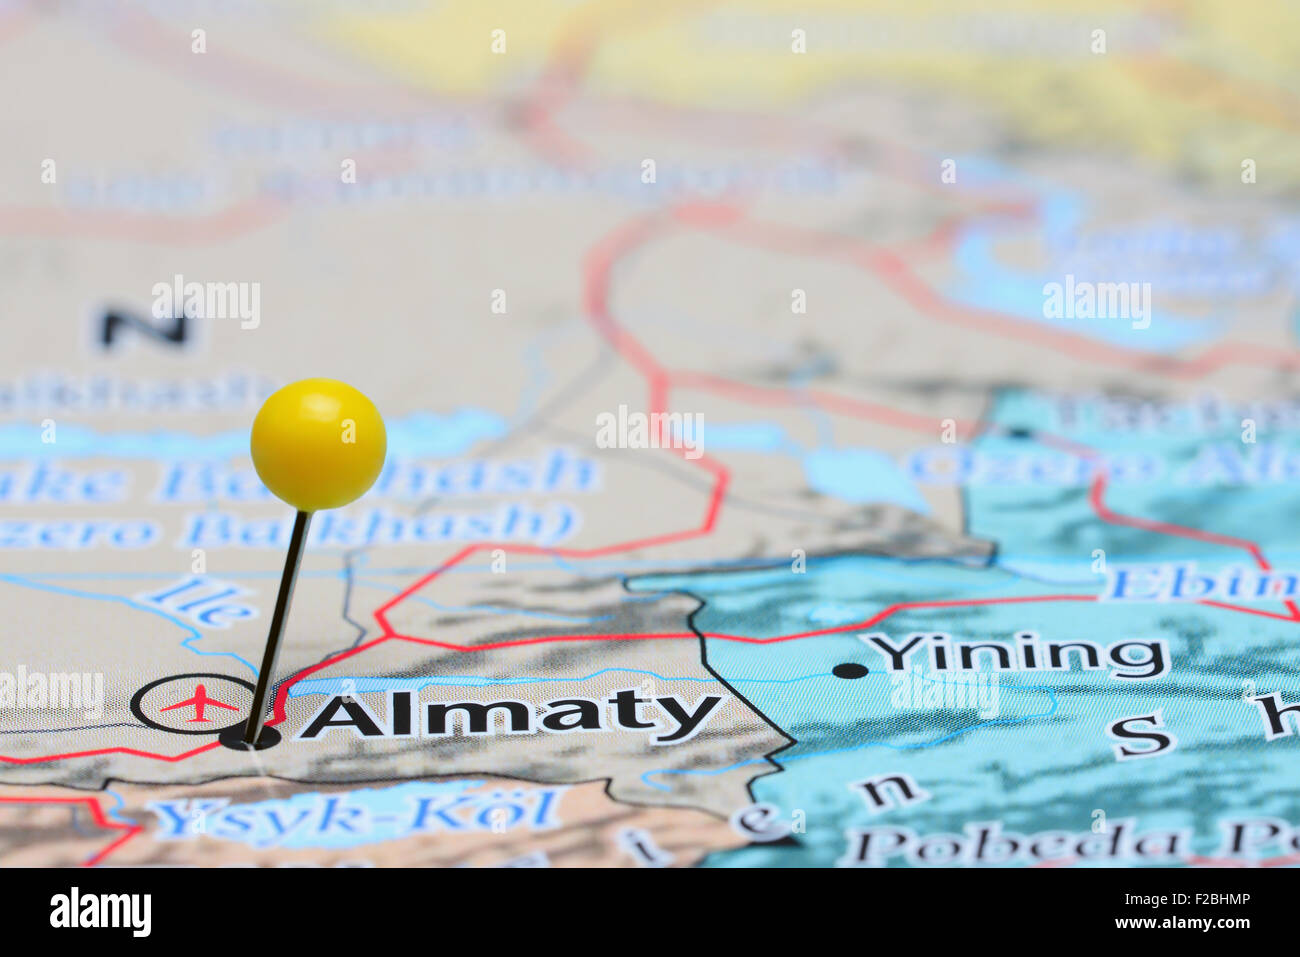 Almaty pinned on a map of Asia Stock Photo Royalty Free Image